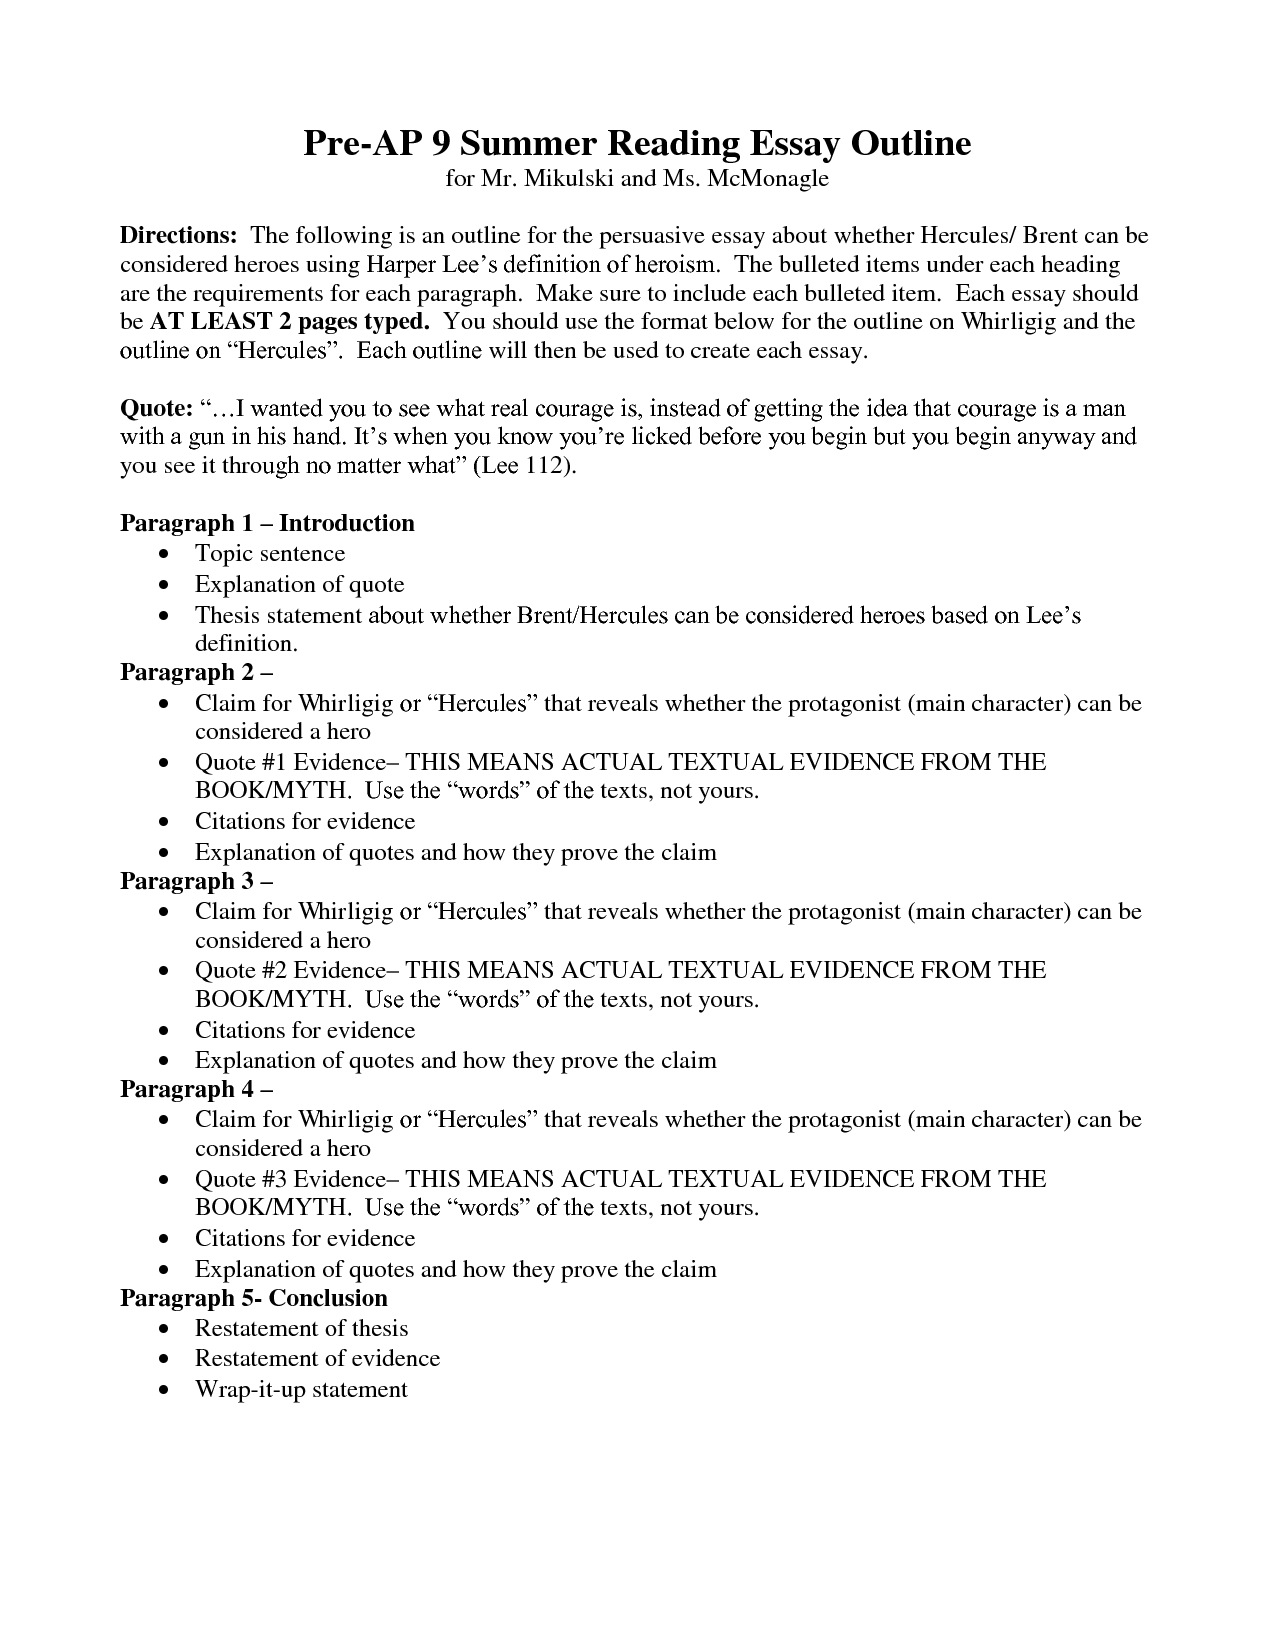 018 Essay Example Writing Definition About Heroism Essays Sample Format Of Freedom On Happiness Success Topics Love Family Respect Extended Friendship How To Awesome Write A Introduction Conclusion Paragraph For Outline Full